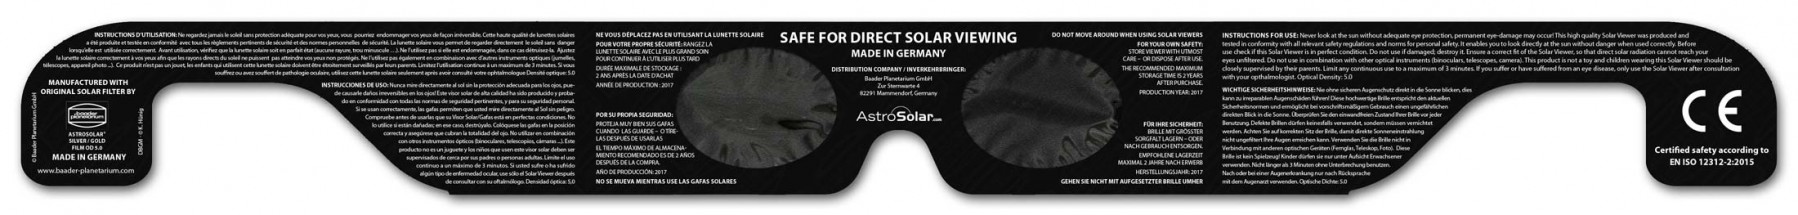 Solar Viewer AstroSolar® Silver/Gold - Rückseite